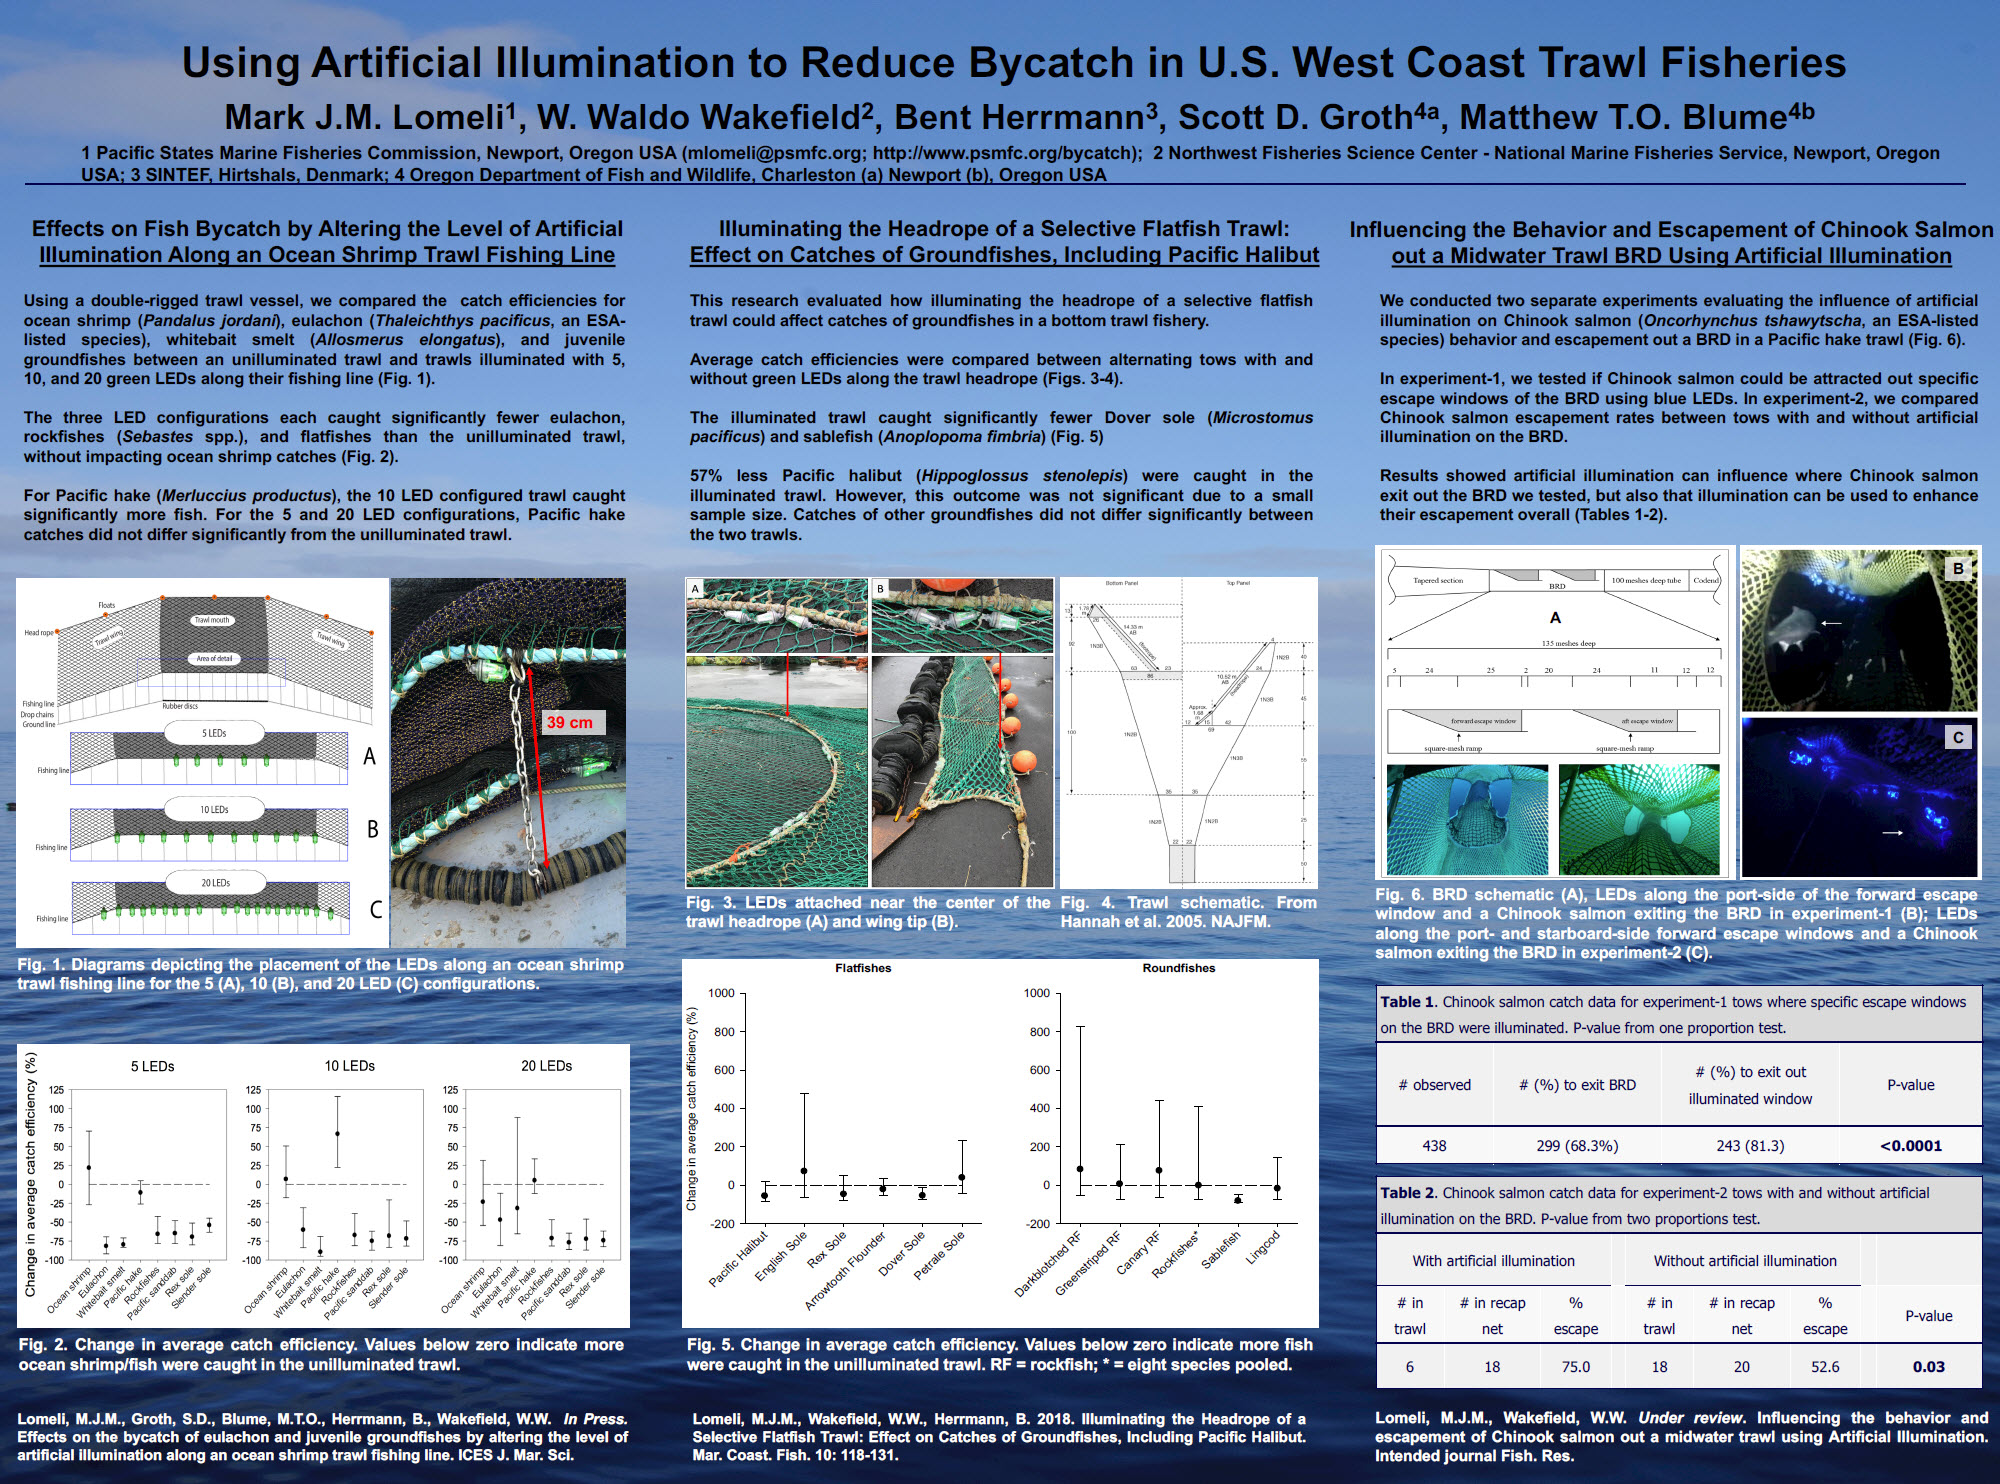 Using Artificial Illumination to Reduce Bycatch in the U.S. West Coast Trawl Fisheries